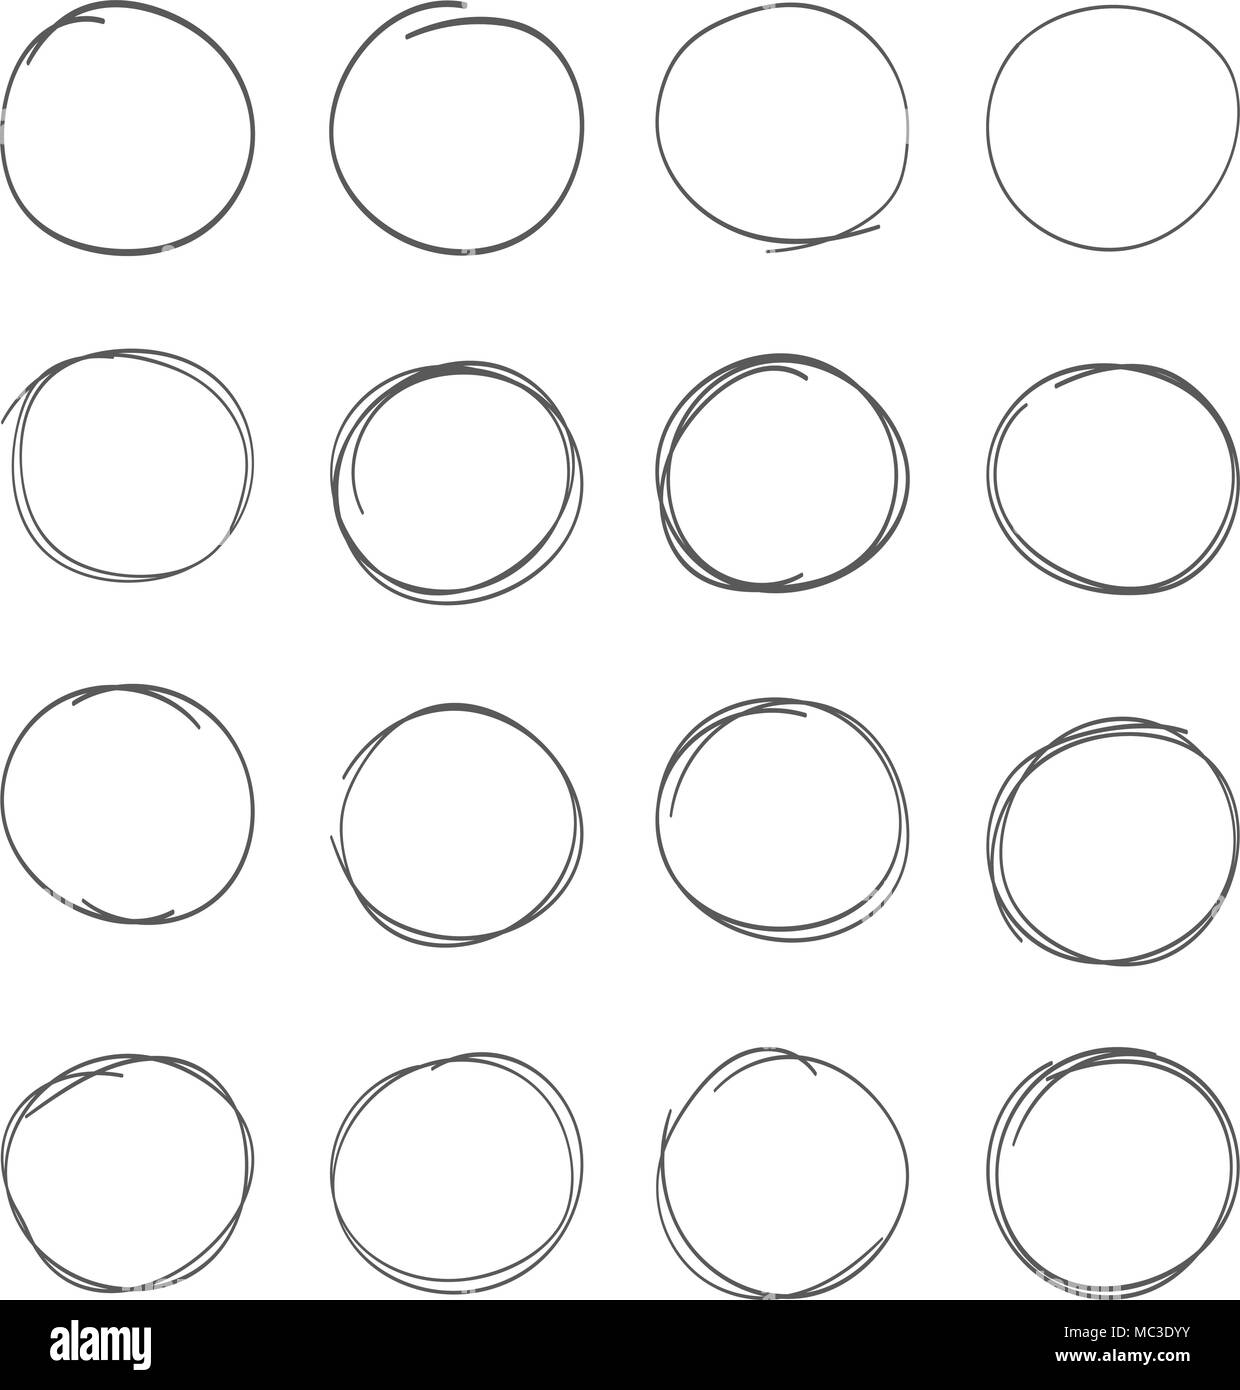 Hand drawn scribble circles set. Doodle ink sketch round note design elements - Stock Image